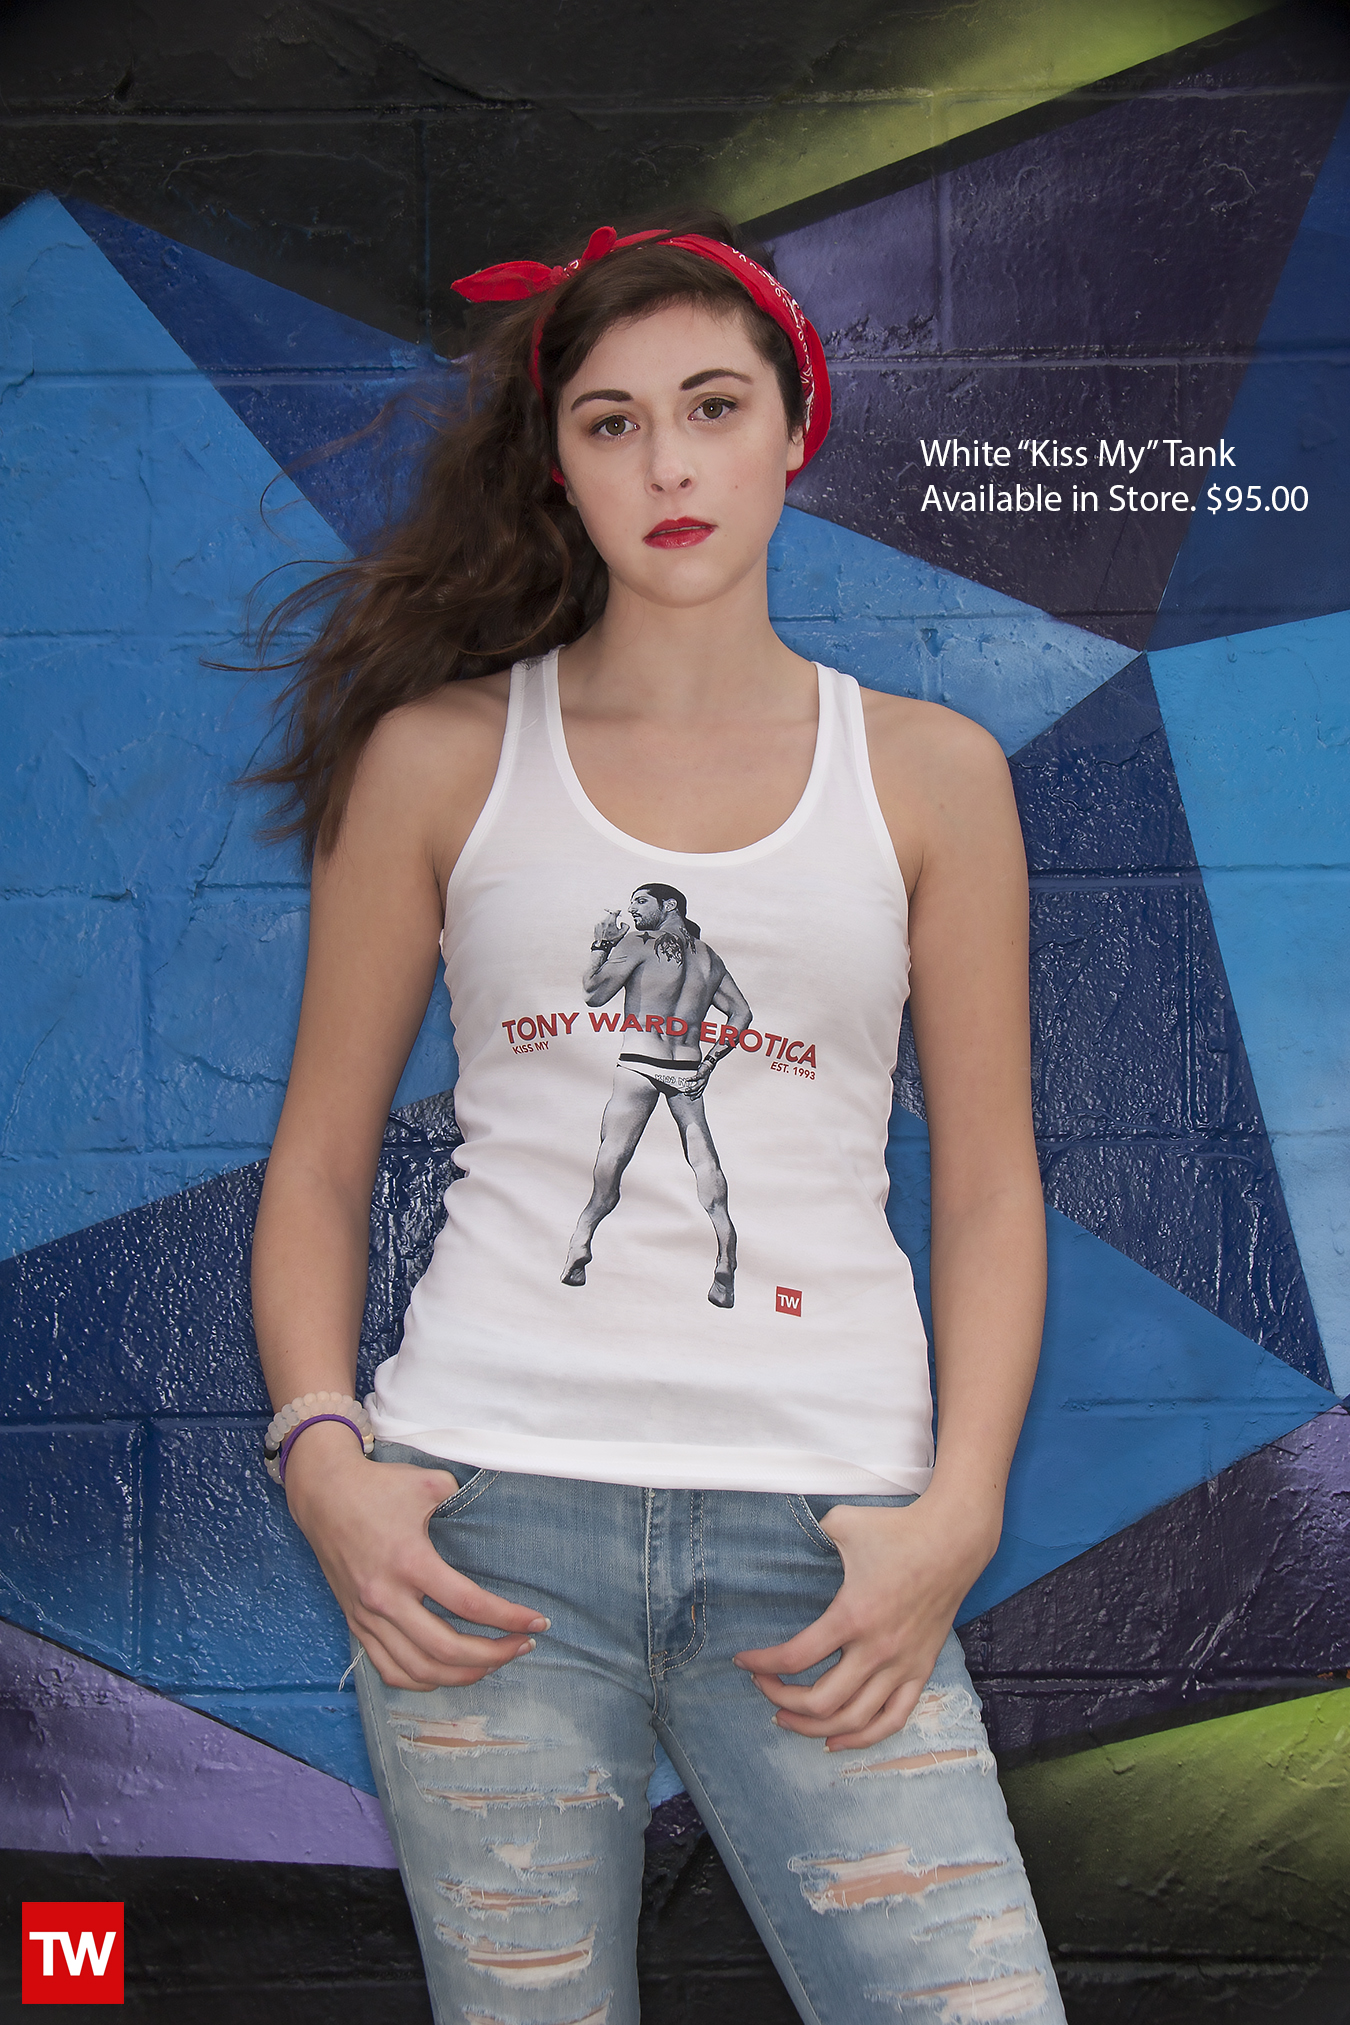 Tony_Ward_Studio_e_commerce_store_t-shirts_white_Kiss_My__tank_sale_model_Caralisa